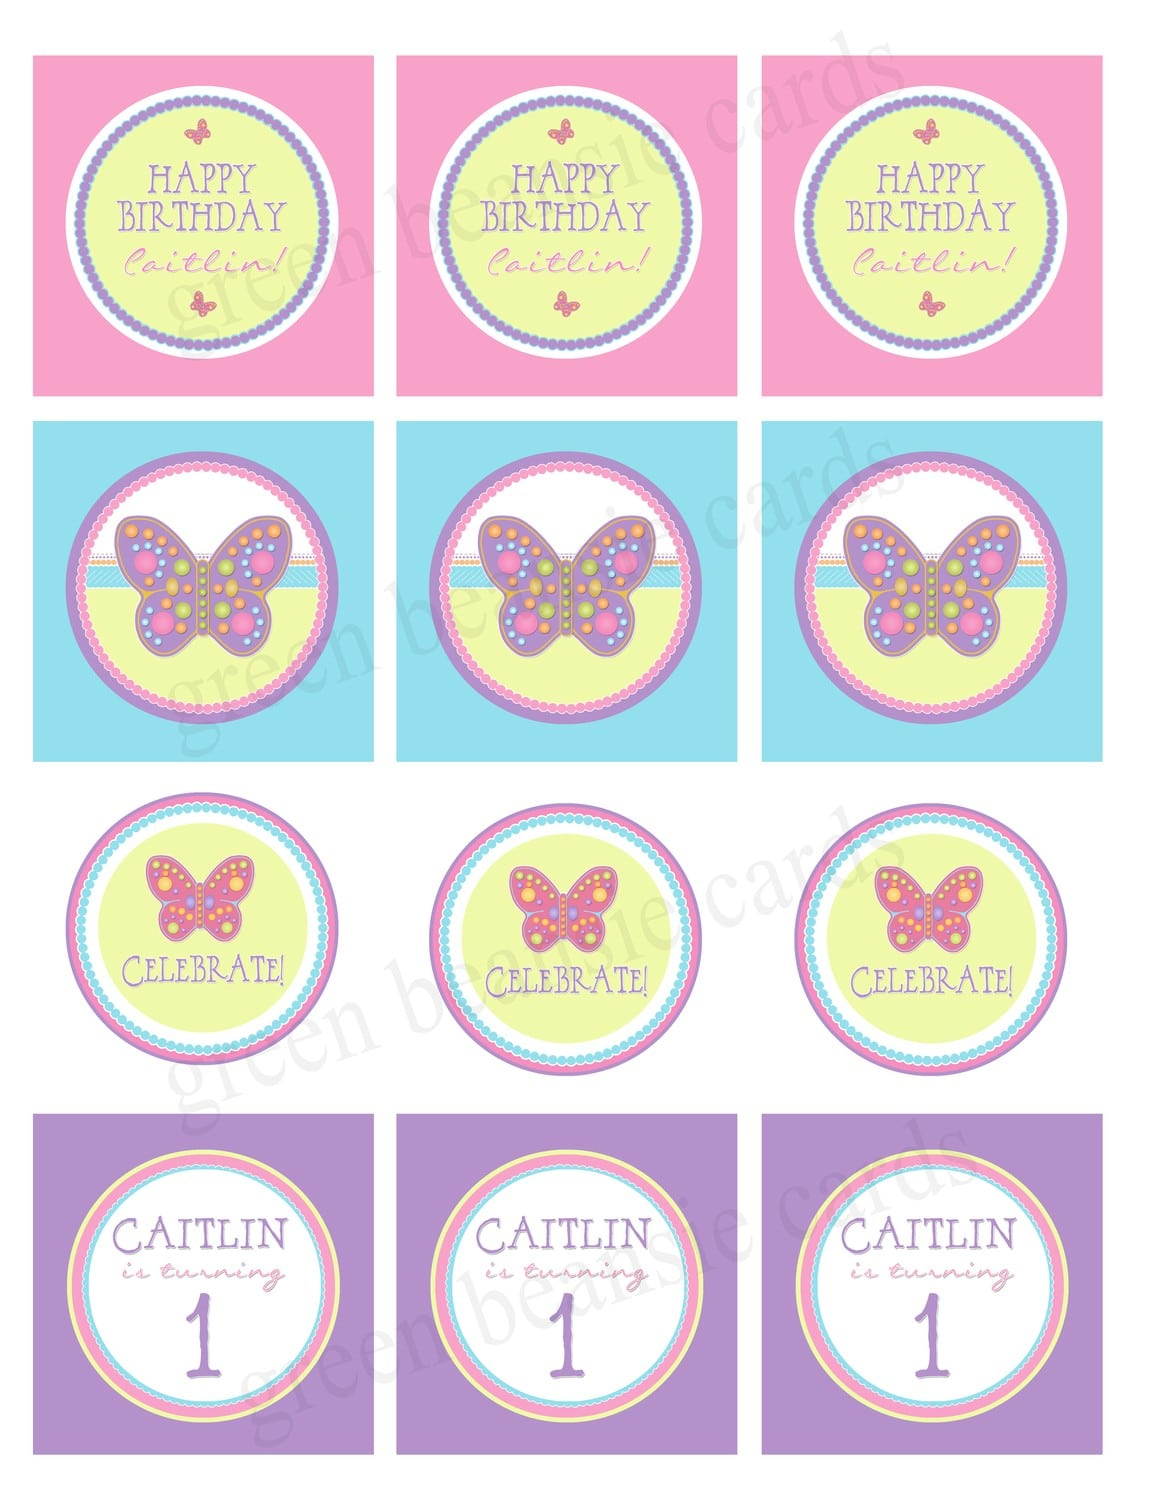 Green Beansie Ink  New Listing! Butterfly Party Circles!